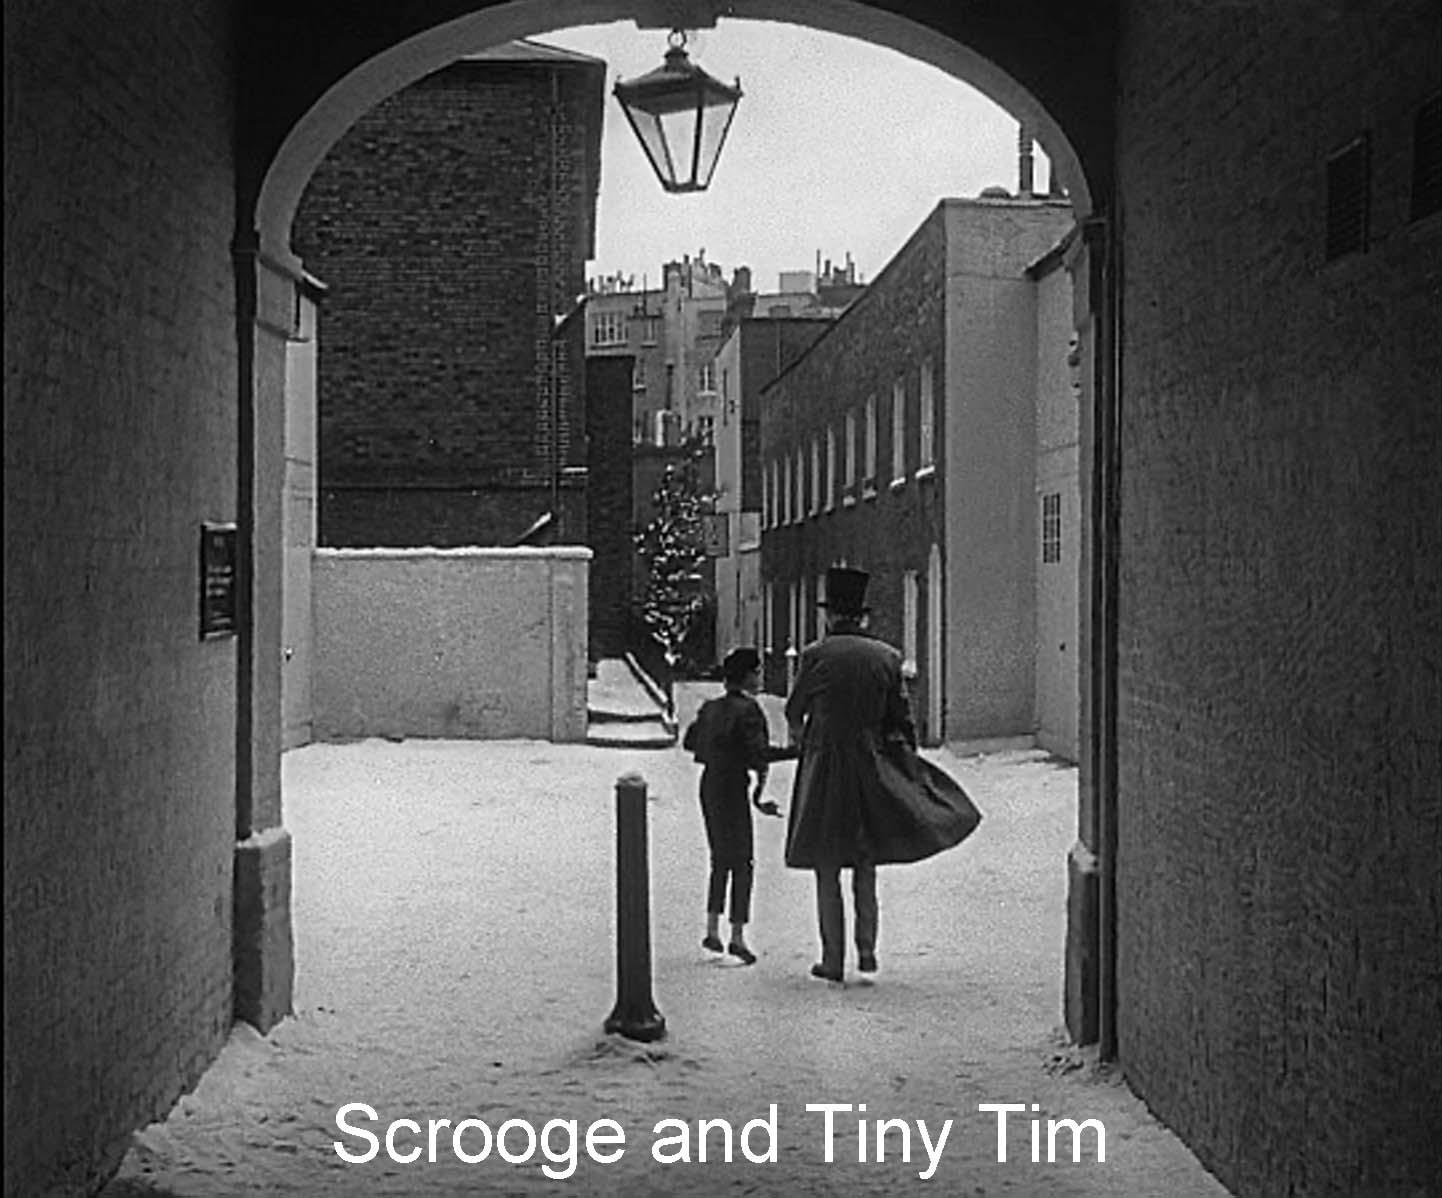 Closing scene: Scrooge and Tiny Tim